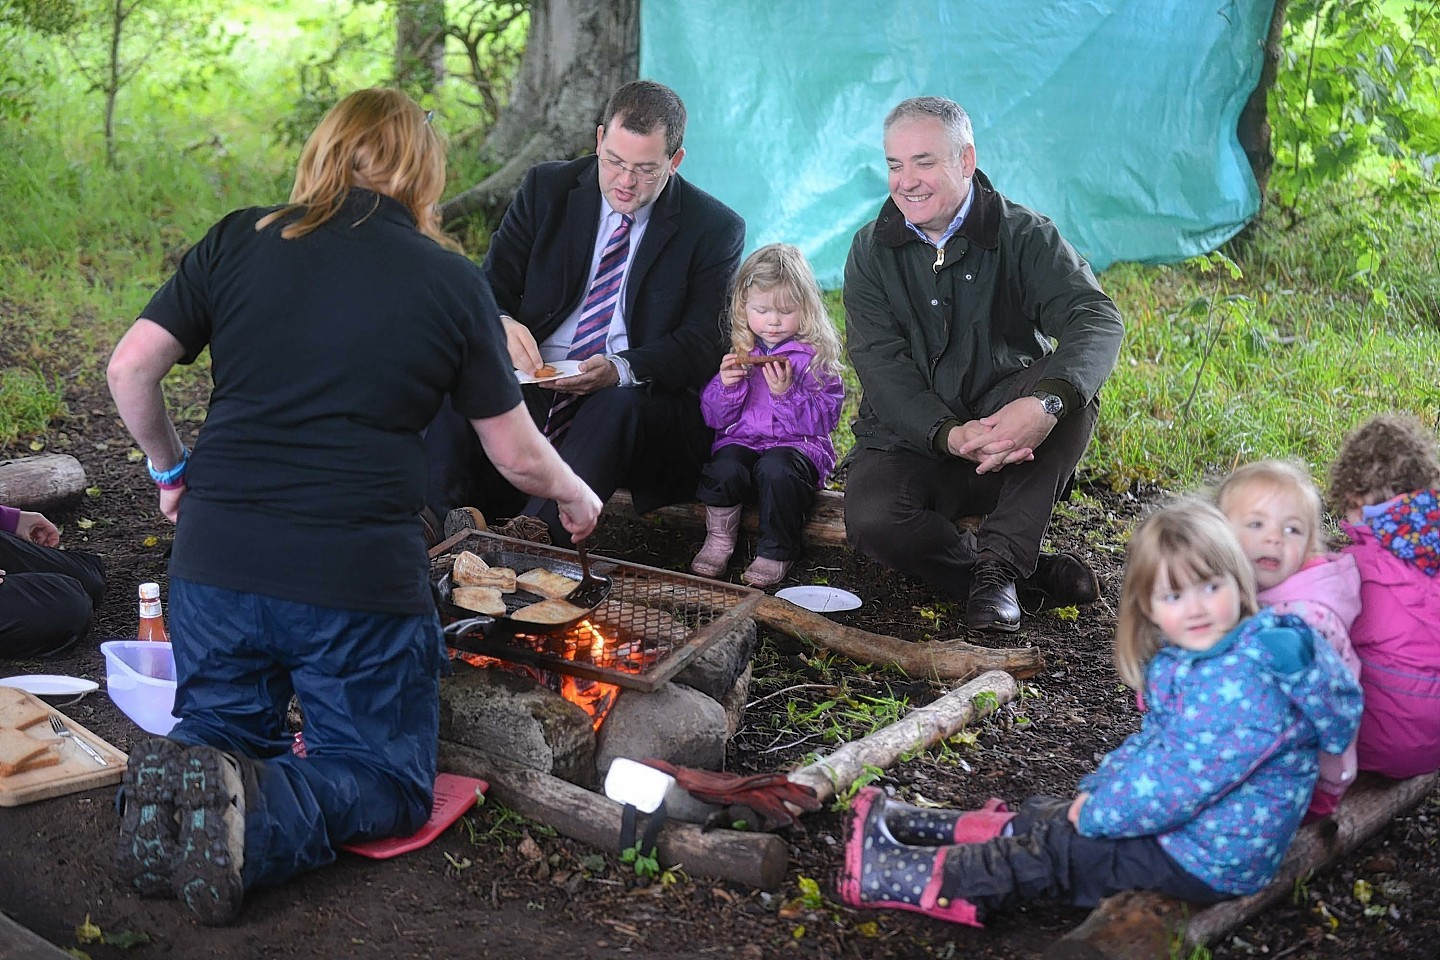 The Scottish Government Minister for Childcare and Early Years, Mark McDonald MSP and Richard Lochhead MSP visit Earthtime Nursery on Duffus Estate it is a nursery based on out side learning.  also in the photo little Orlaith Kessack 3 (centre)  Photo by Michael Traill 9 South Road Rhynie Huntly AB54 4GA  Contact numbers Mob07739 38 4792 Home01464 861425